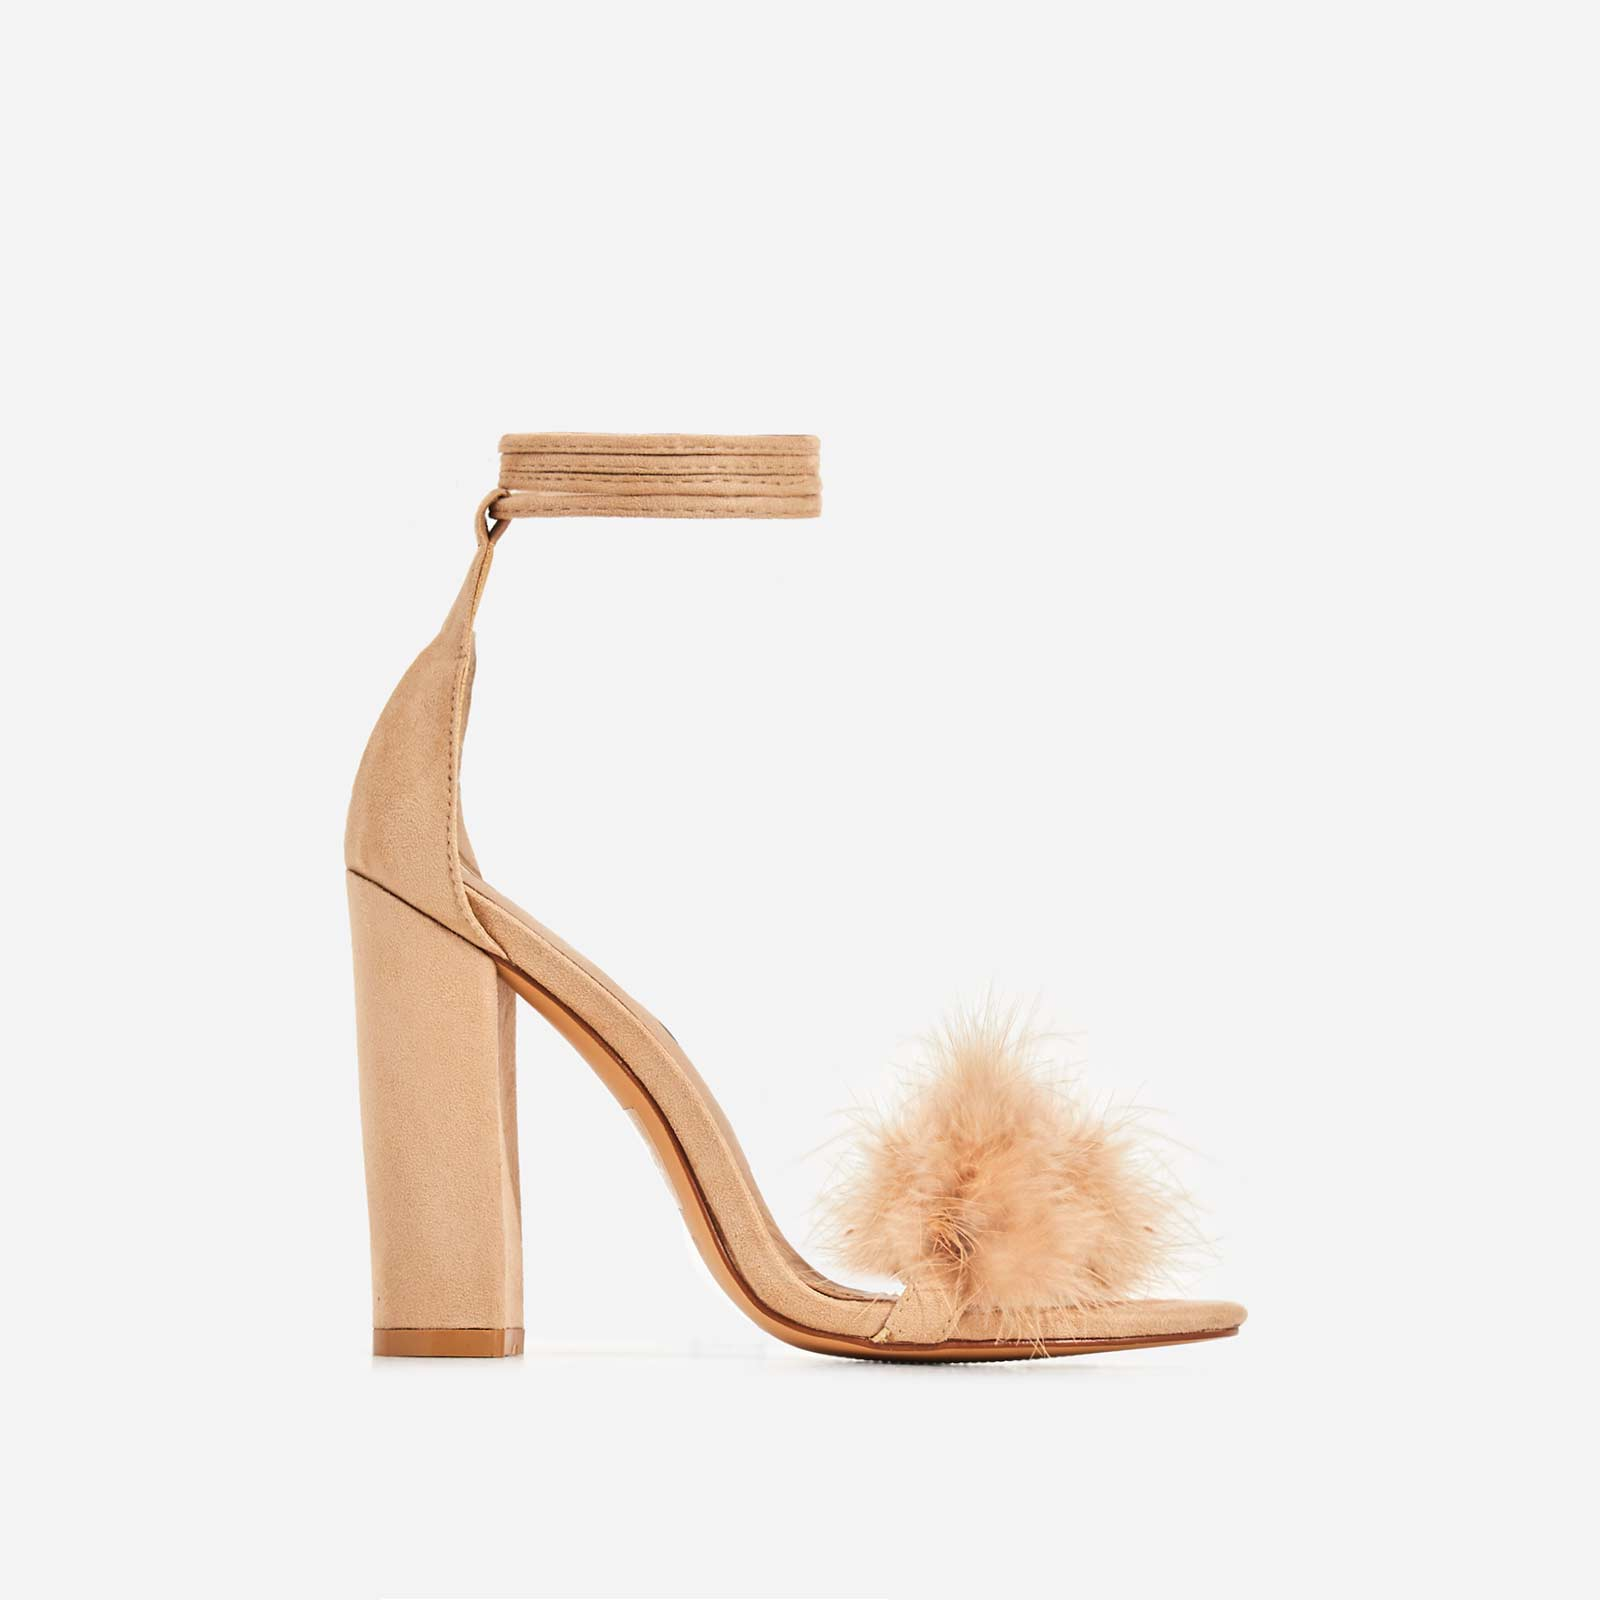 Vision Lace Up Fluffy Heel In Nude Faux Suede Image 1